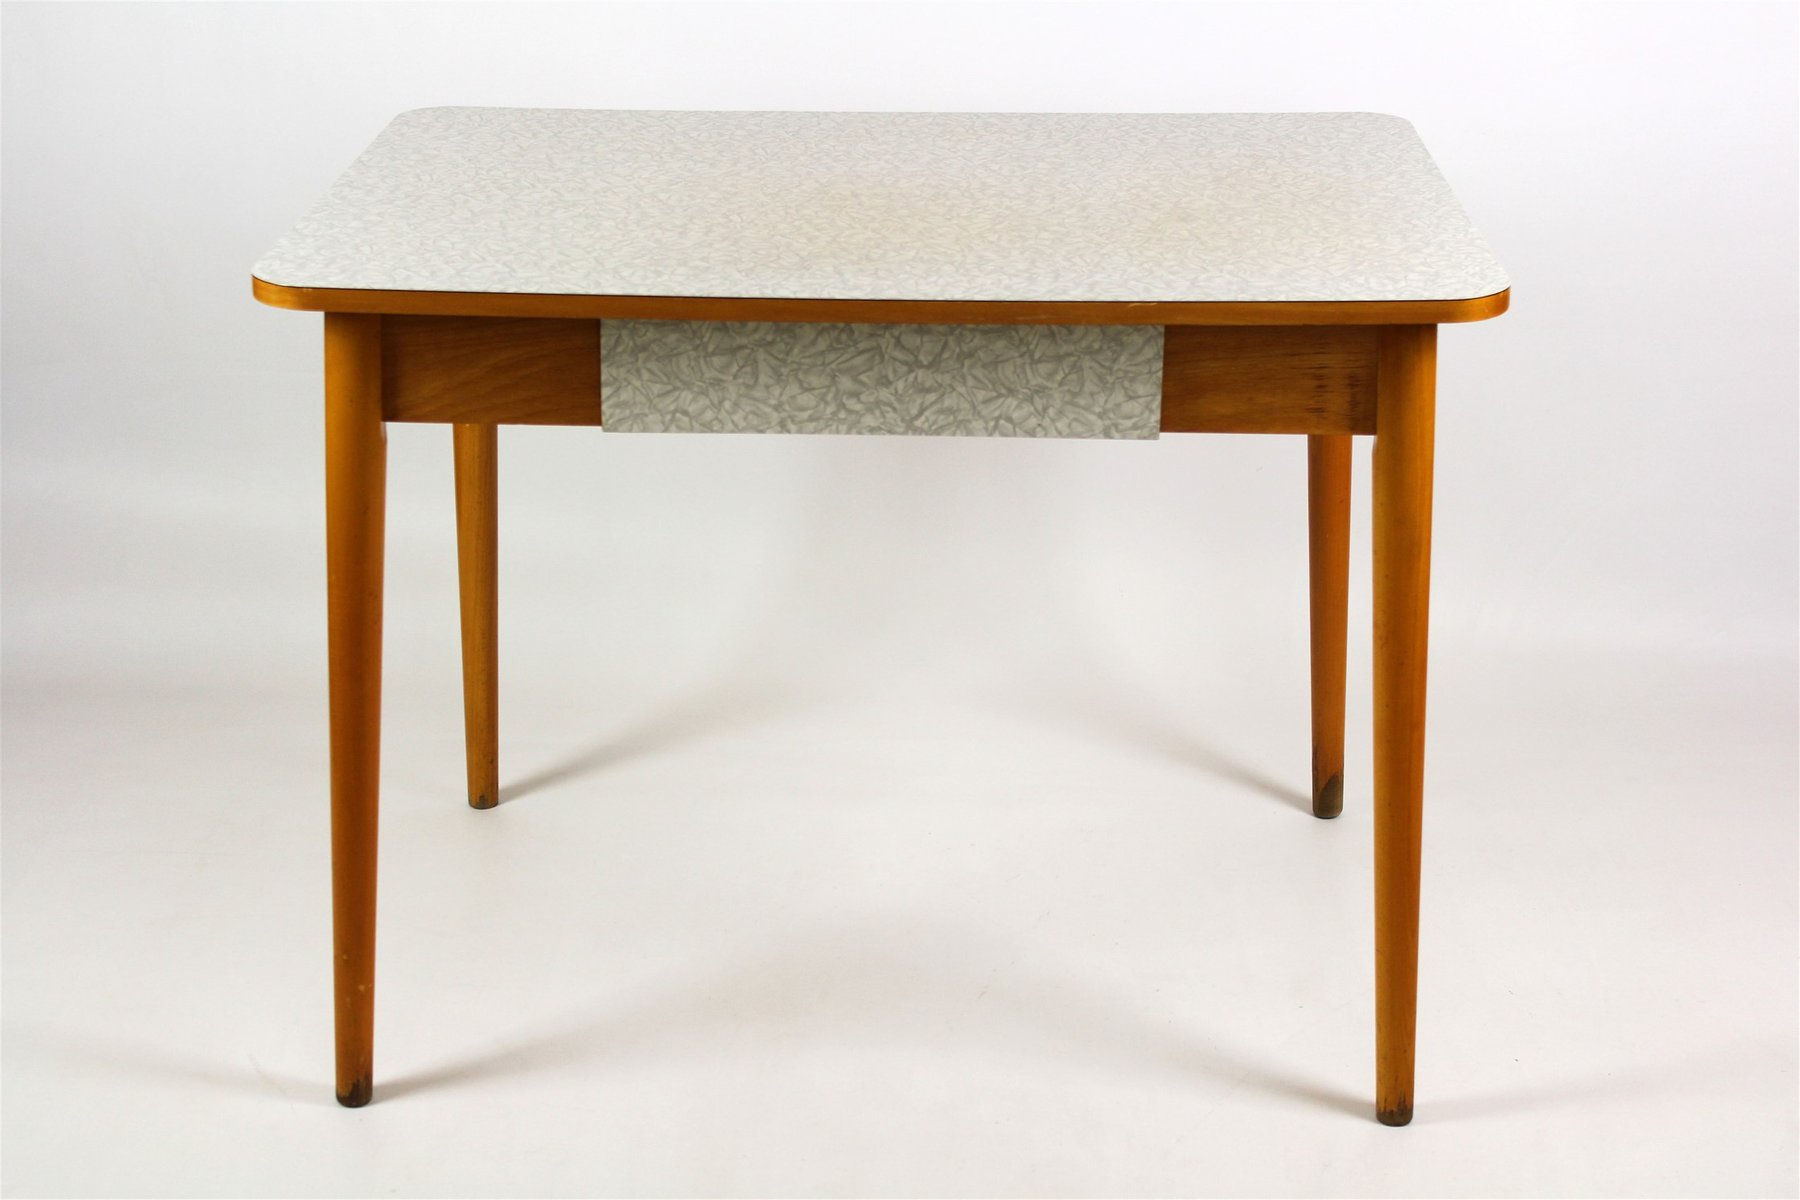 Formica Kitchen Table From Jitona 1960s For Sale At Pamono